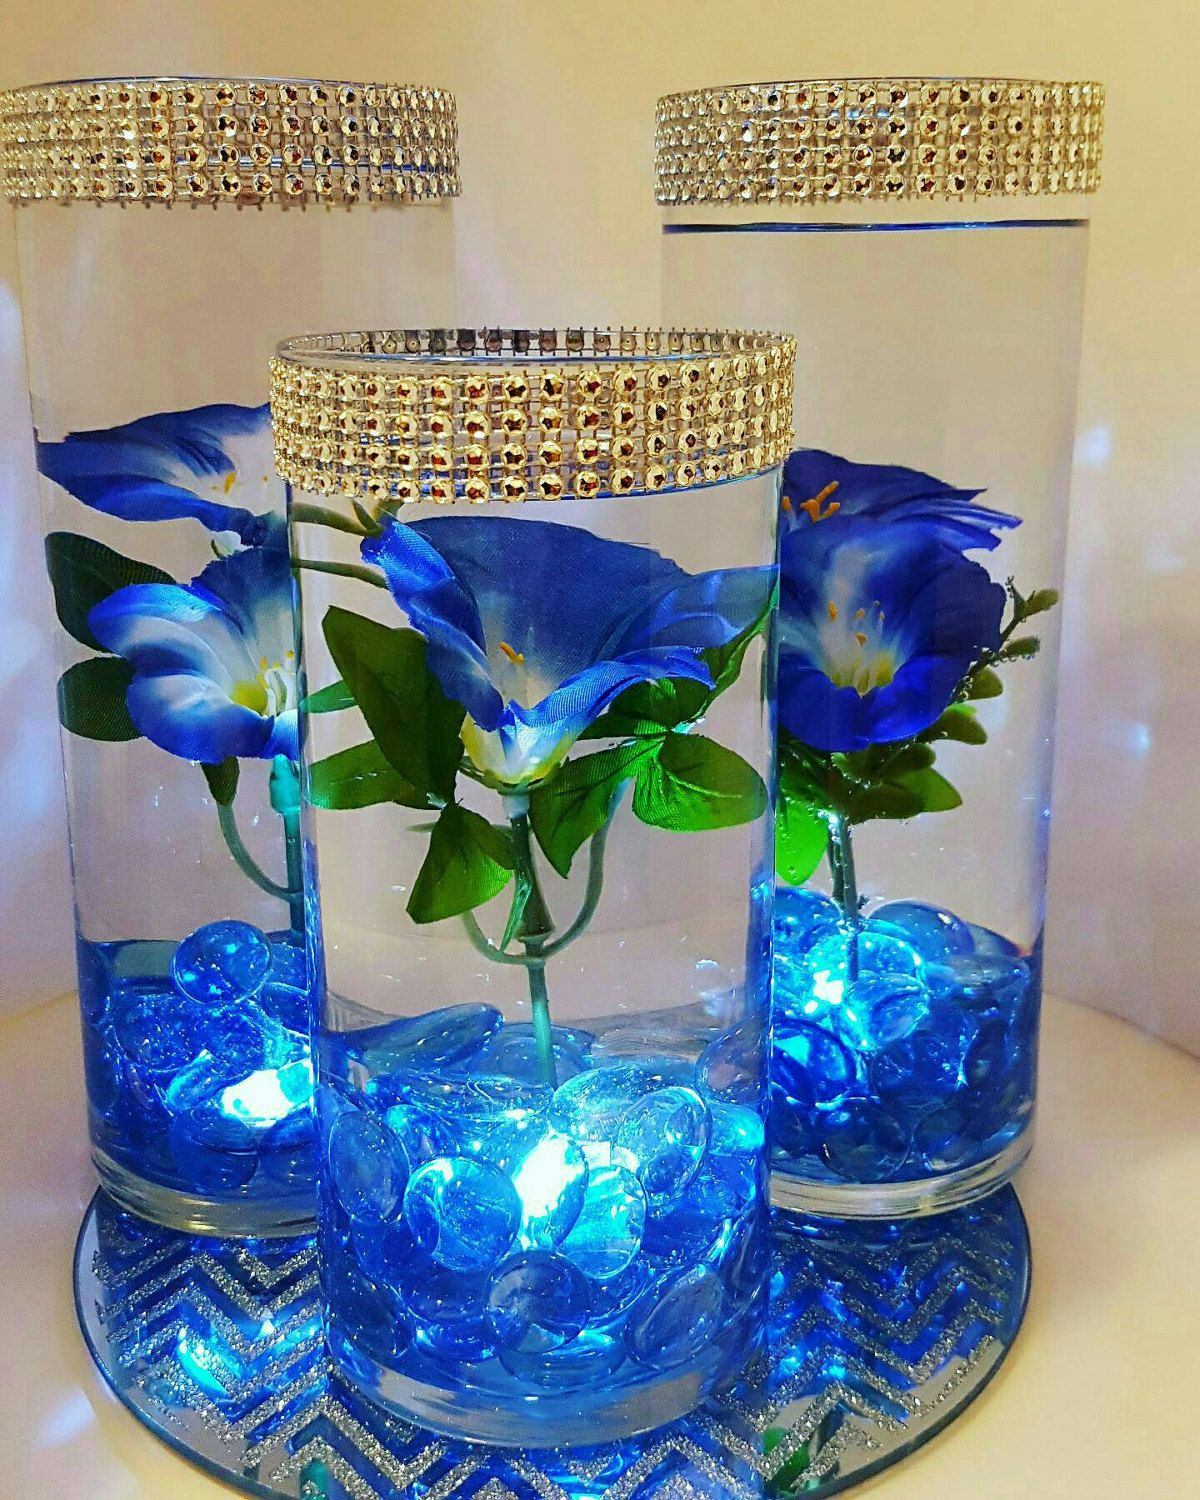 Candle Flower Centerpieces Wedding: Wedding Centerpiece, Floating Flower Centerpiece, LED